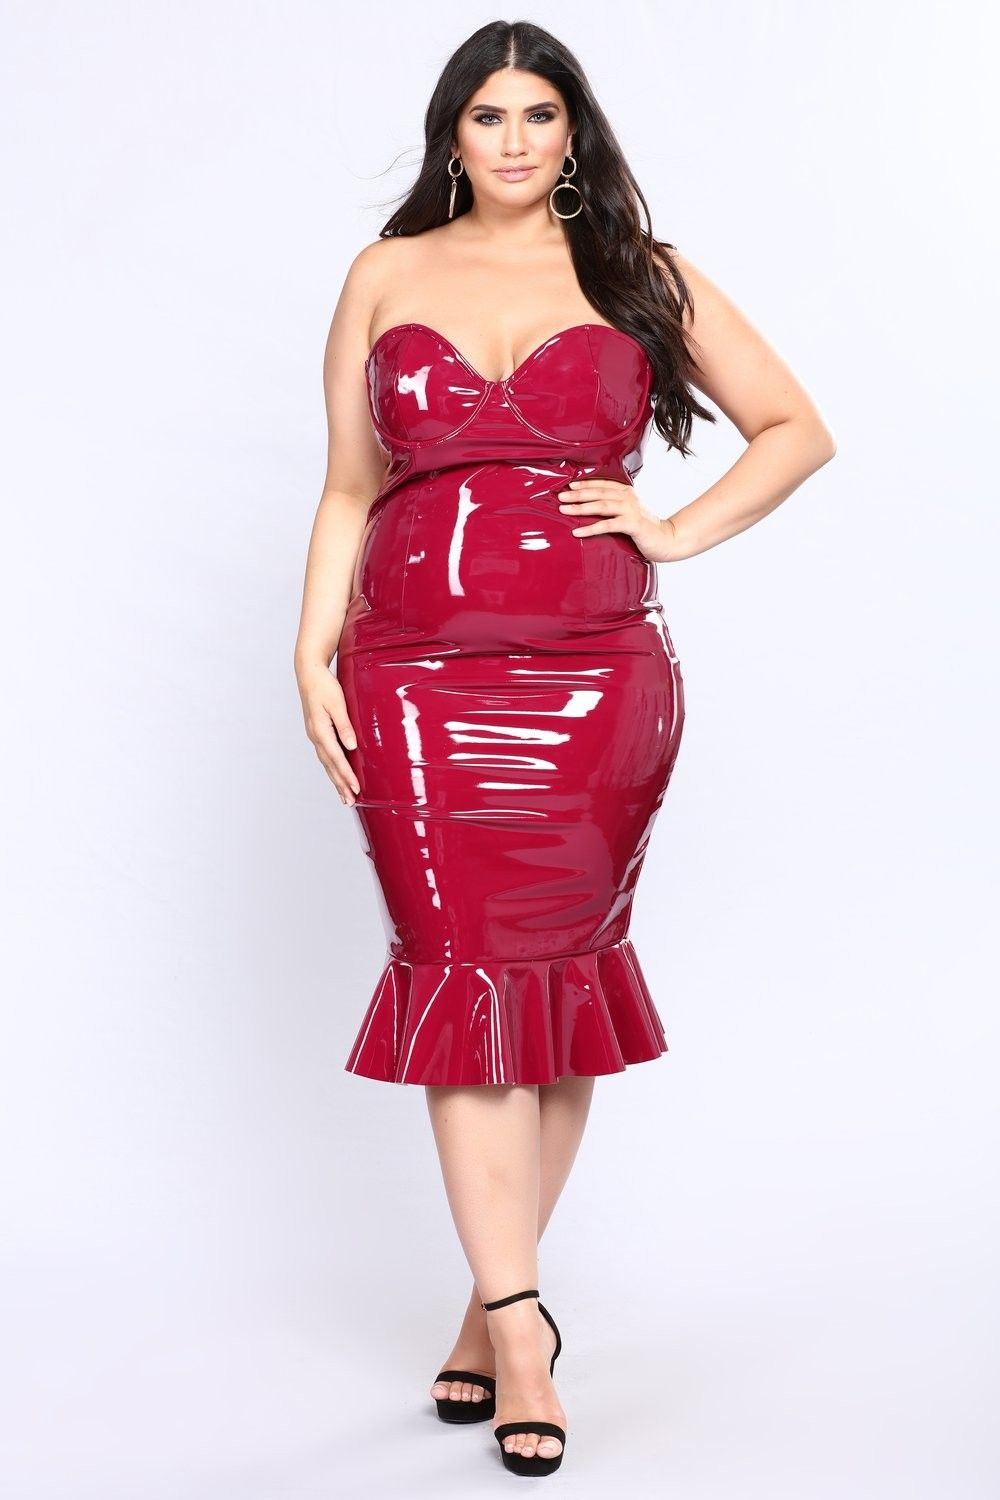 07457e4d1d60 Plus Size Xia Latex Dress - Wine  19.97  fashion  ootd  outfit  oufits   moda  plussize  dress  dresses  plussizeclothing  plussizedress  curve   curvy  sexy ...